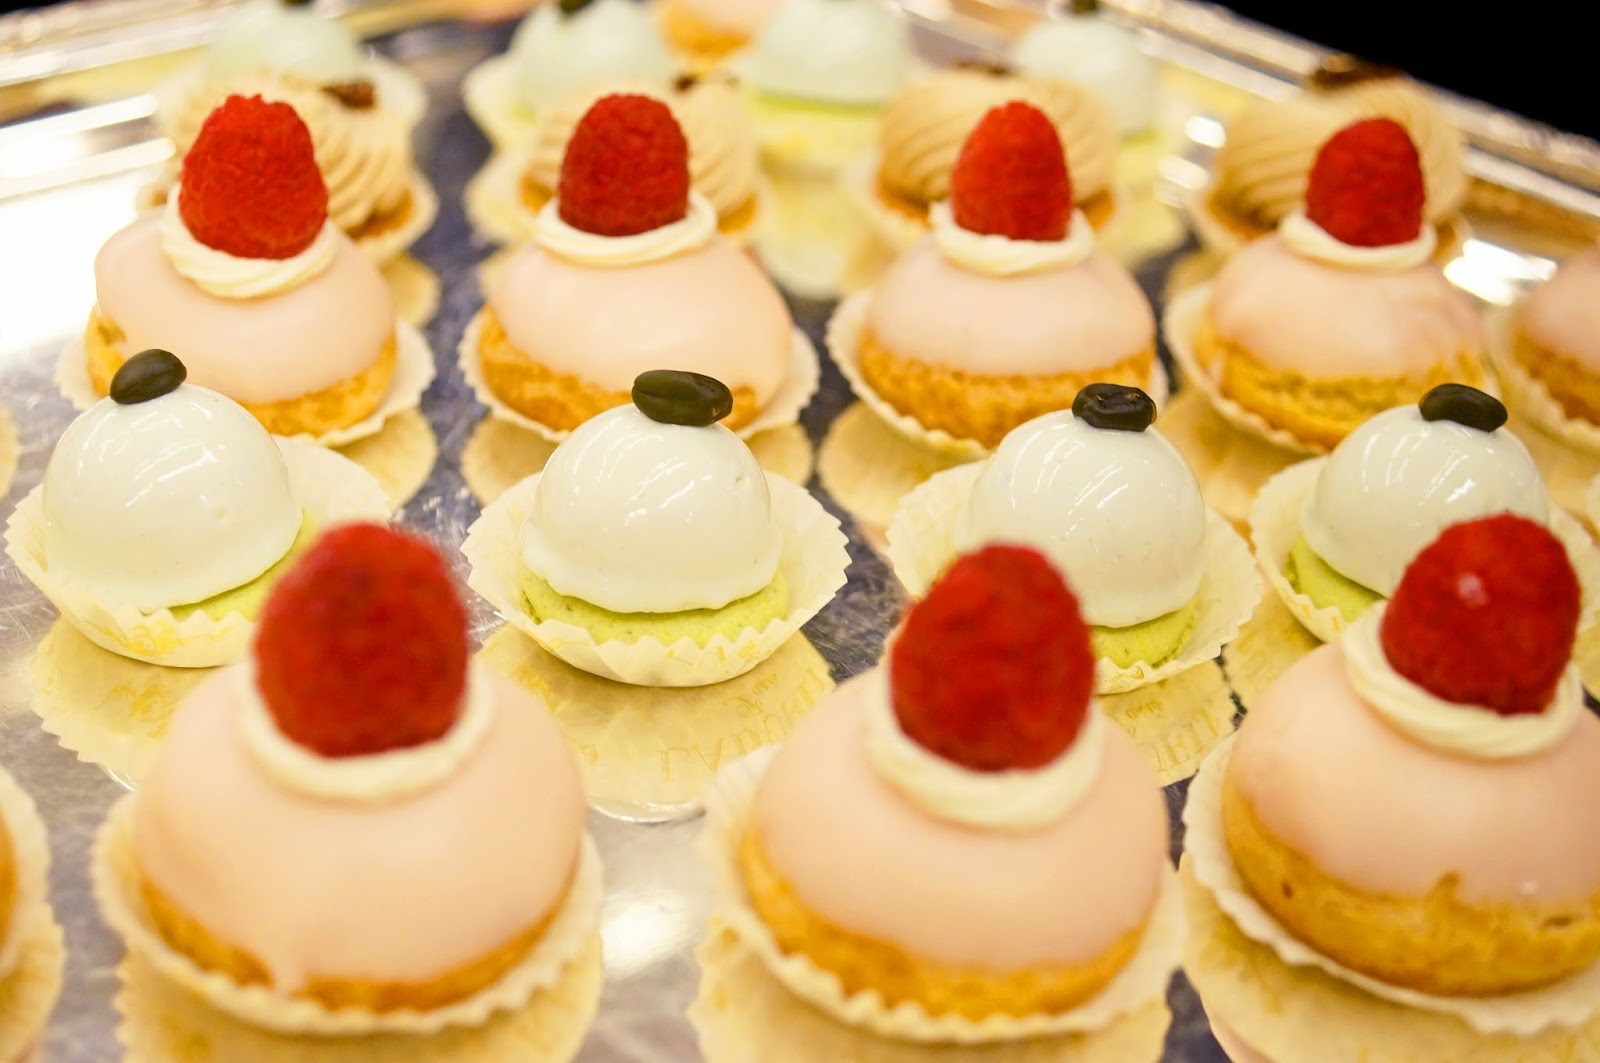 Cute and delicious french desserts from Ladurée